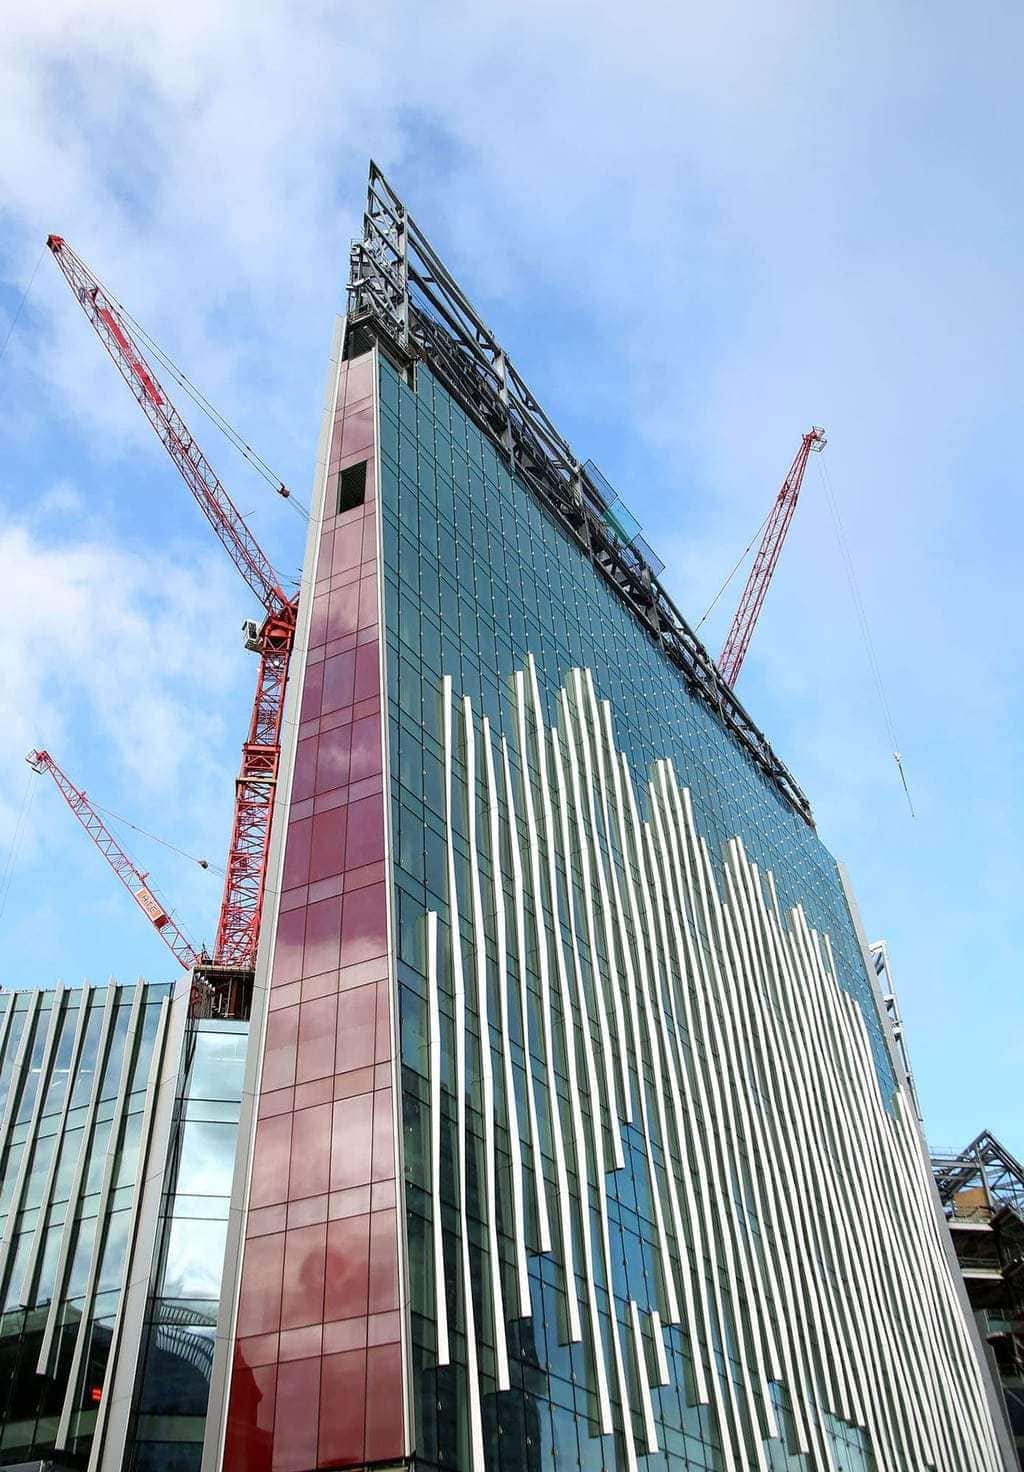 I WAS COMMISION BY BROOKFIELD MULTIPLEX ONE OF THE WORLDS LARGEST CONSTRUCTION COMPANIES TO TAKE A SERIES OF IMAGES IN THE CITY OF LONDON.  By Dpi Photography,PLP Architects, Benson & Forsyth, Flanagan Lawrence and Lynch Architects.